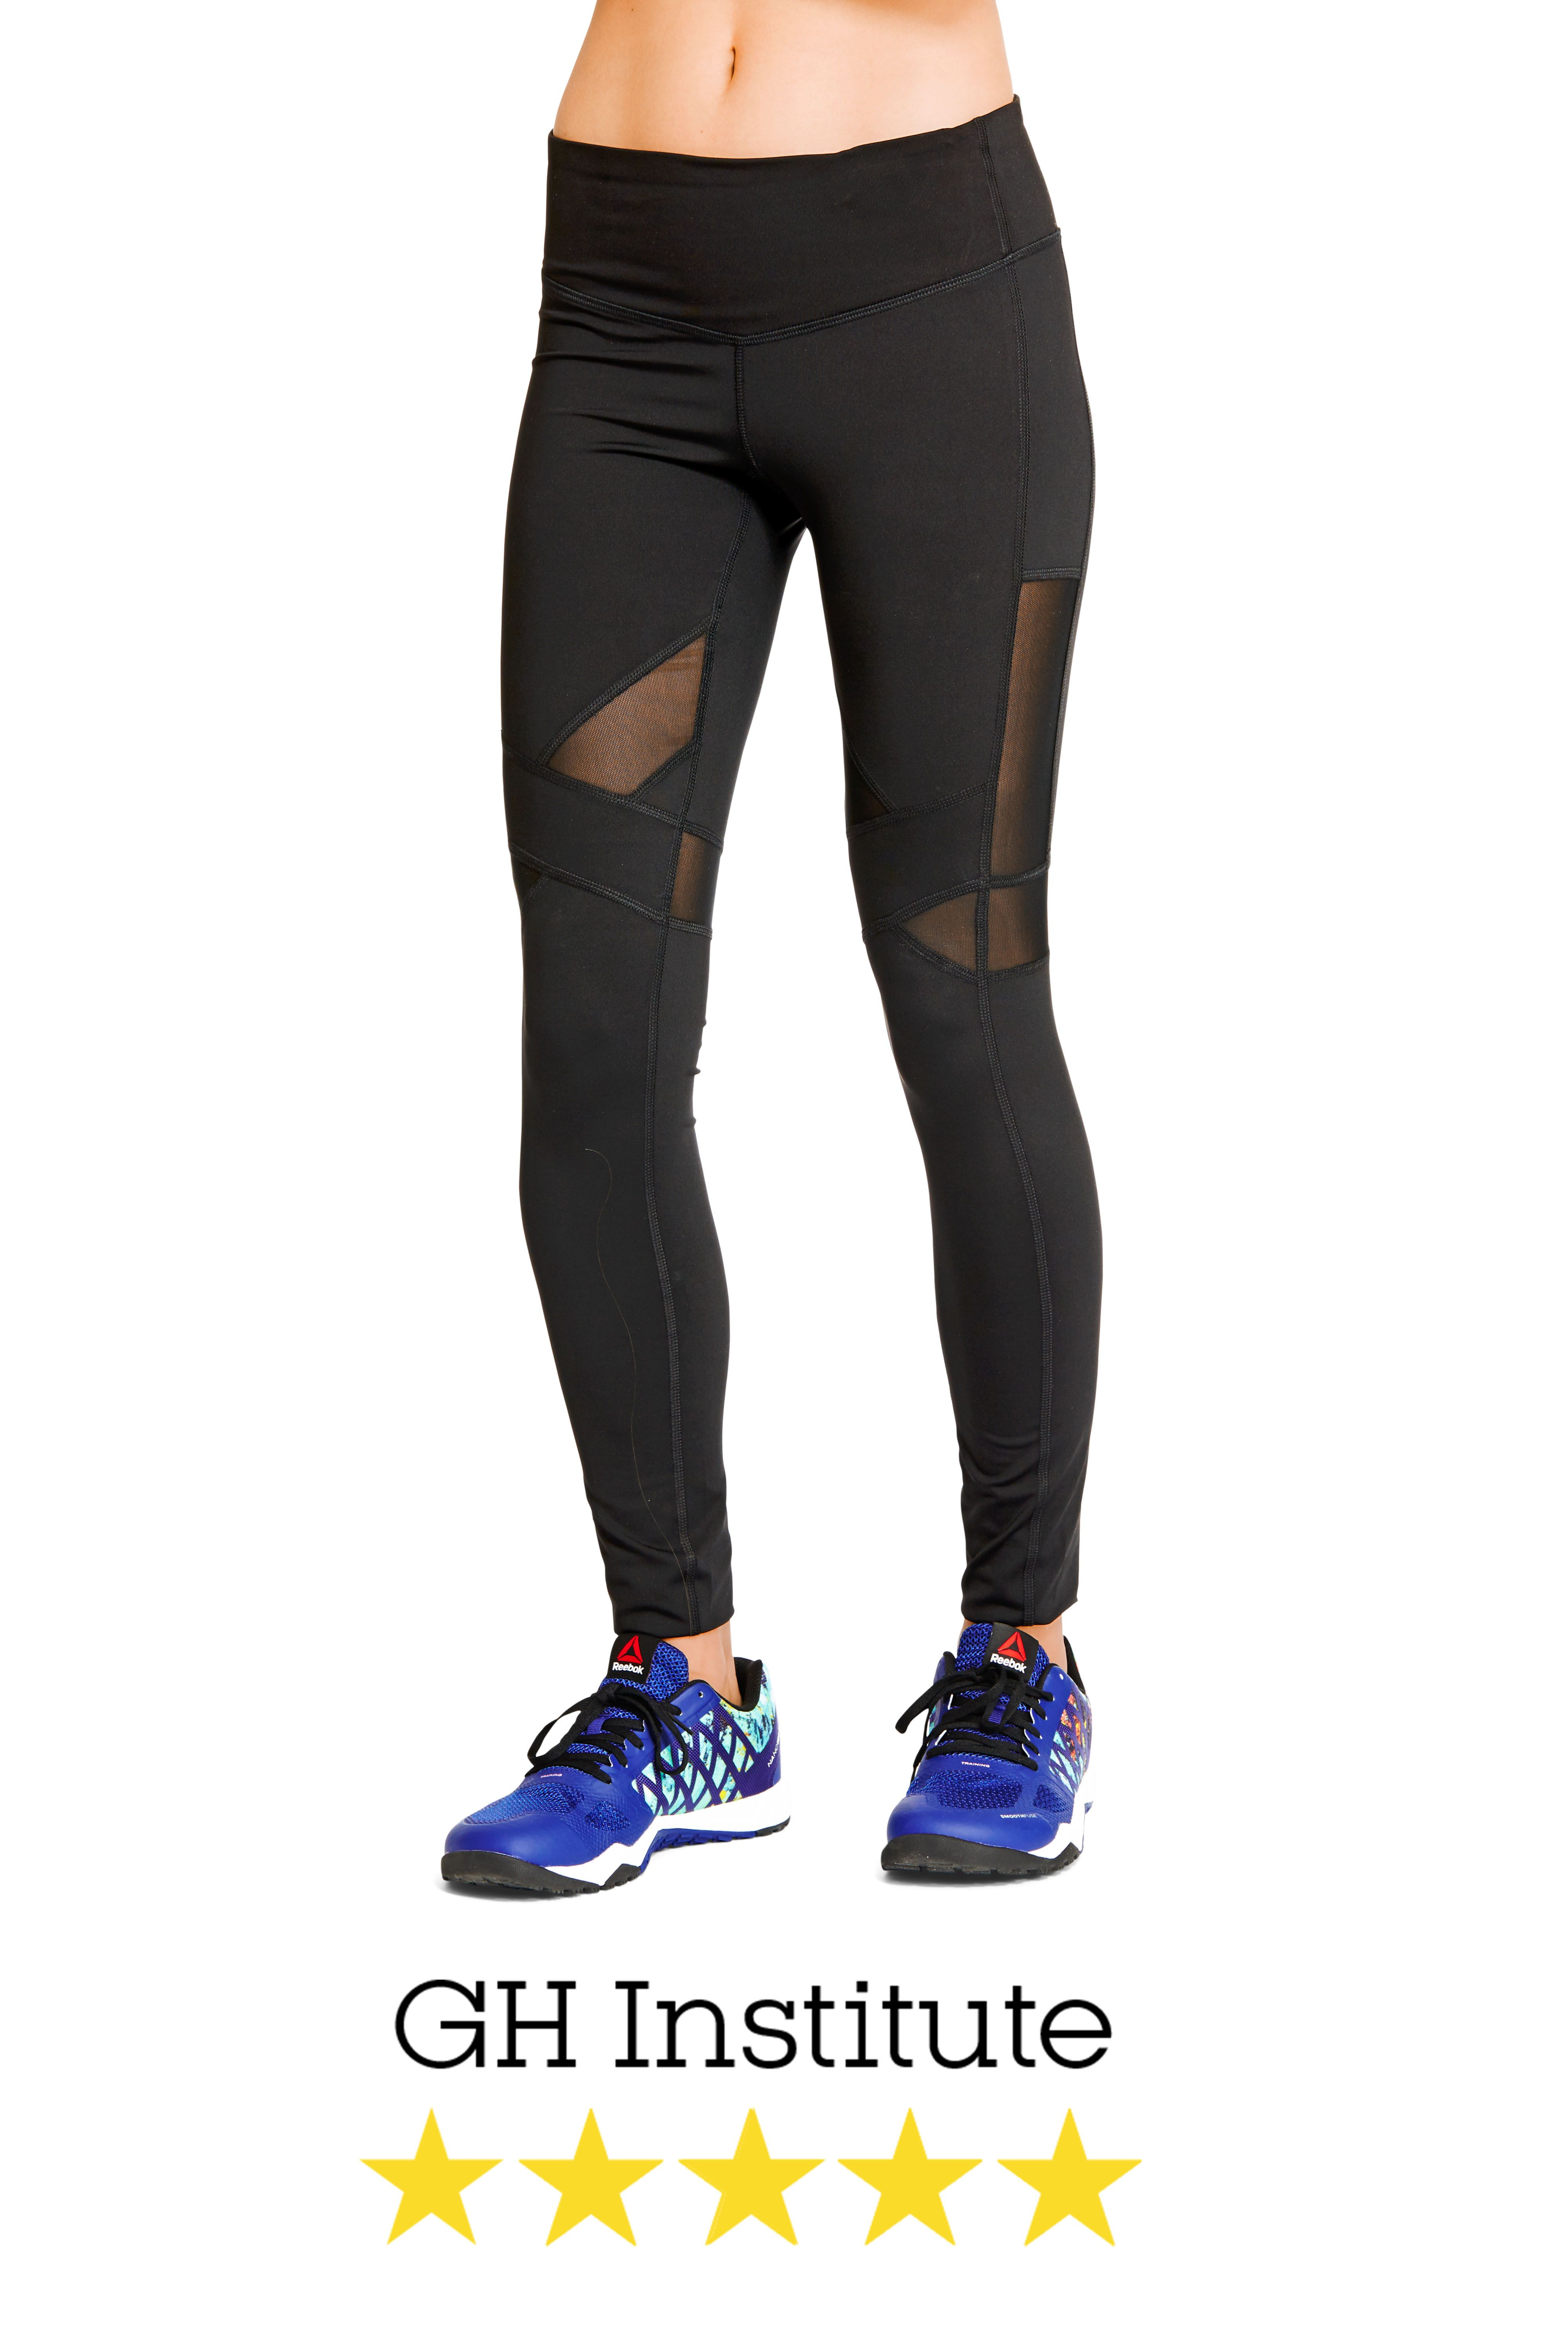 The 12 Best Workout Leggings to Buy in 2019 The 12 Best Workout Leggings to Buy in 2019 new picture